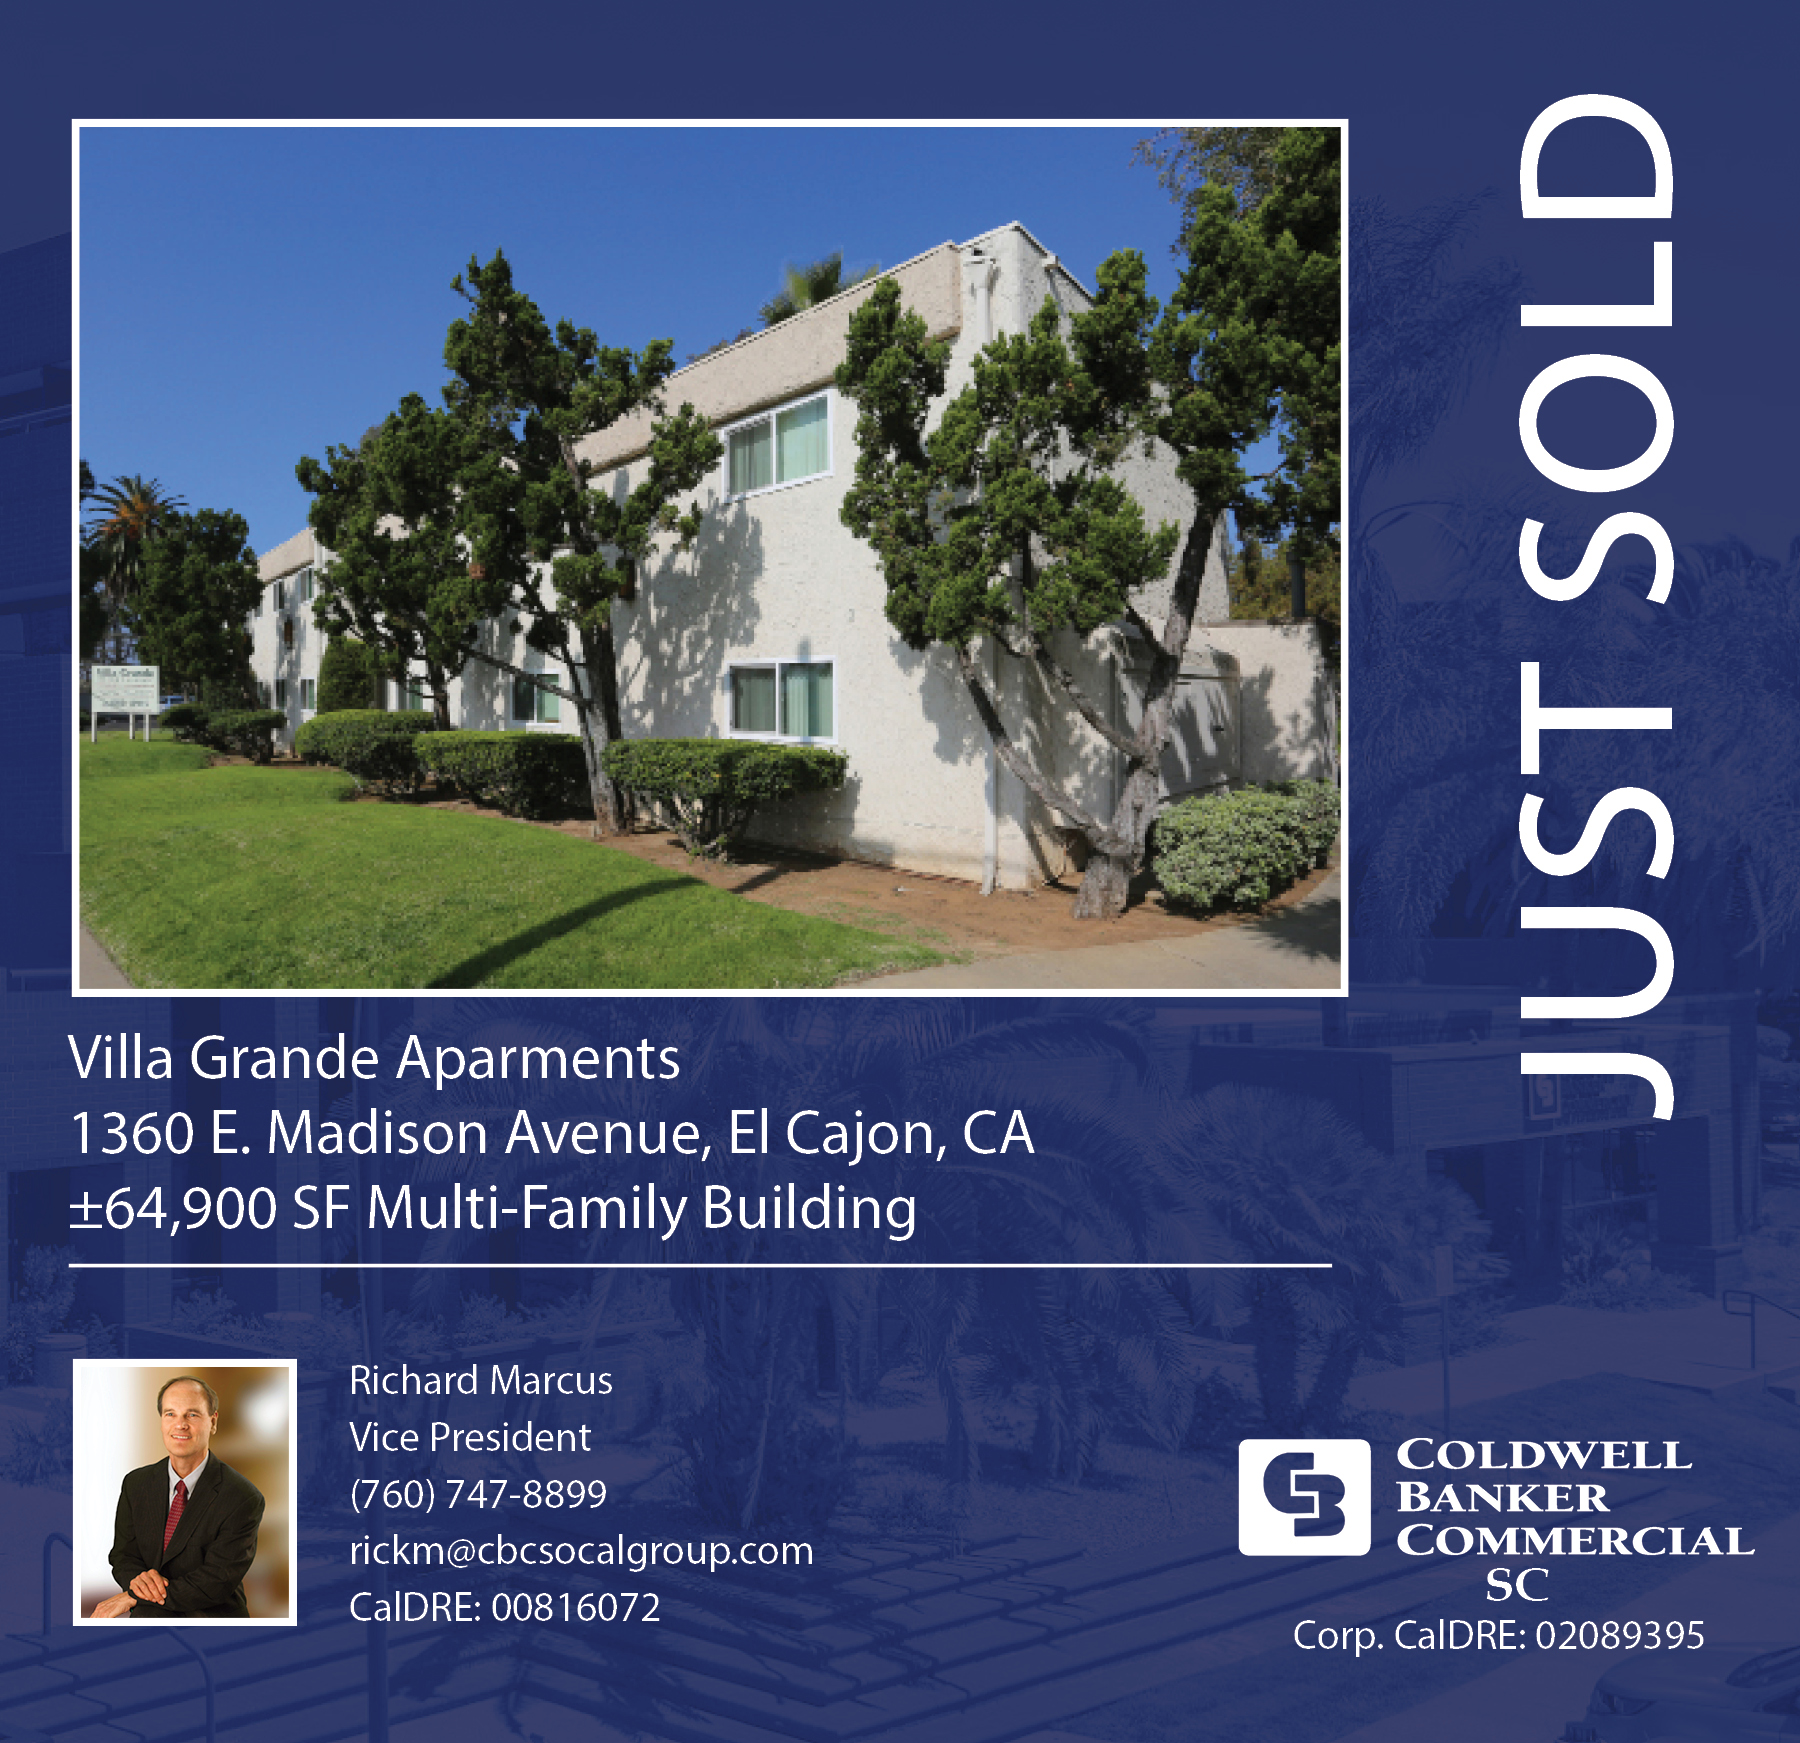 SOLD! by Rick Marcus a ±64,900 SF Multi-Family Building